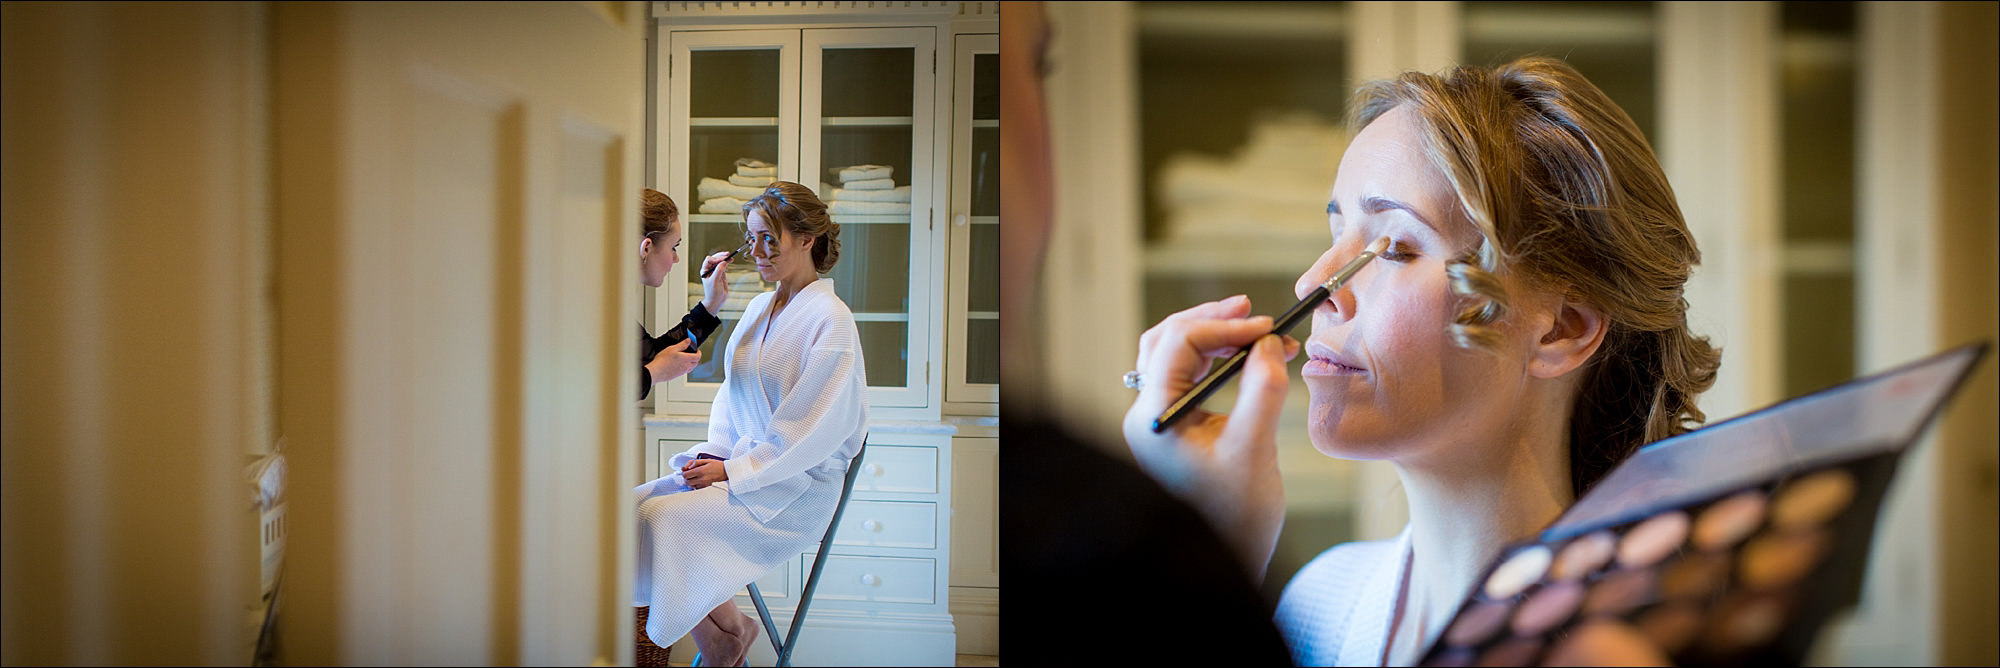 dublin wedding photographer david duignan photography tankardstown weddings slane rathfeigh church ireland 0006